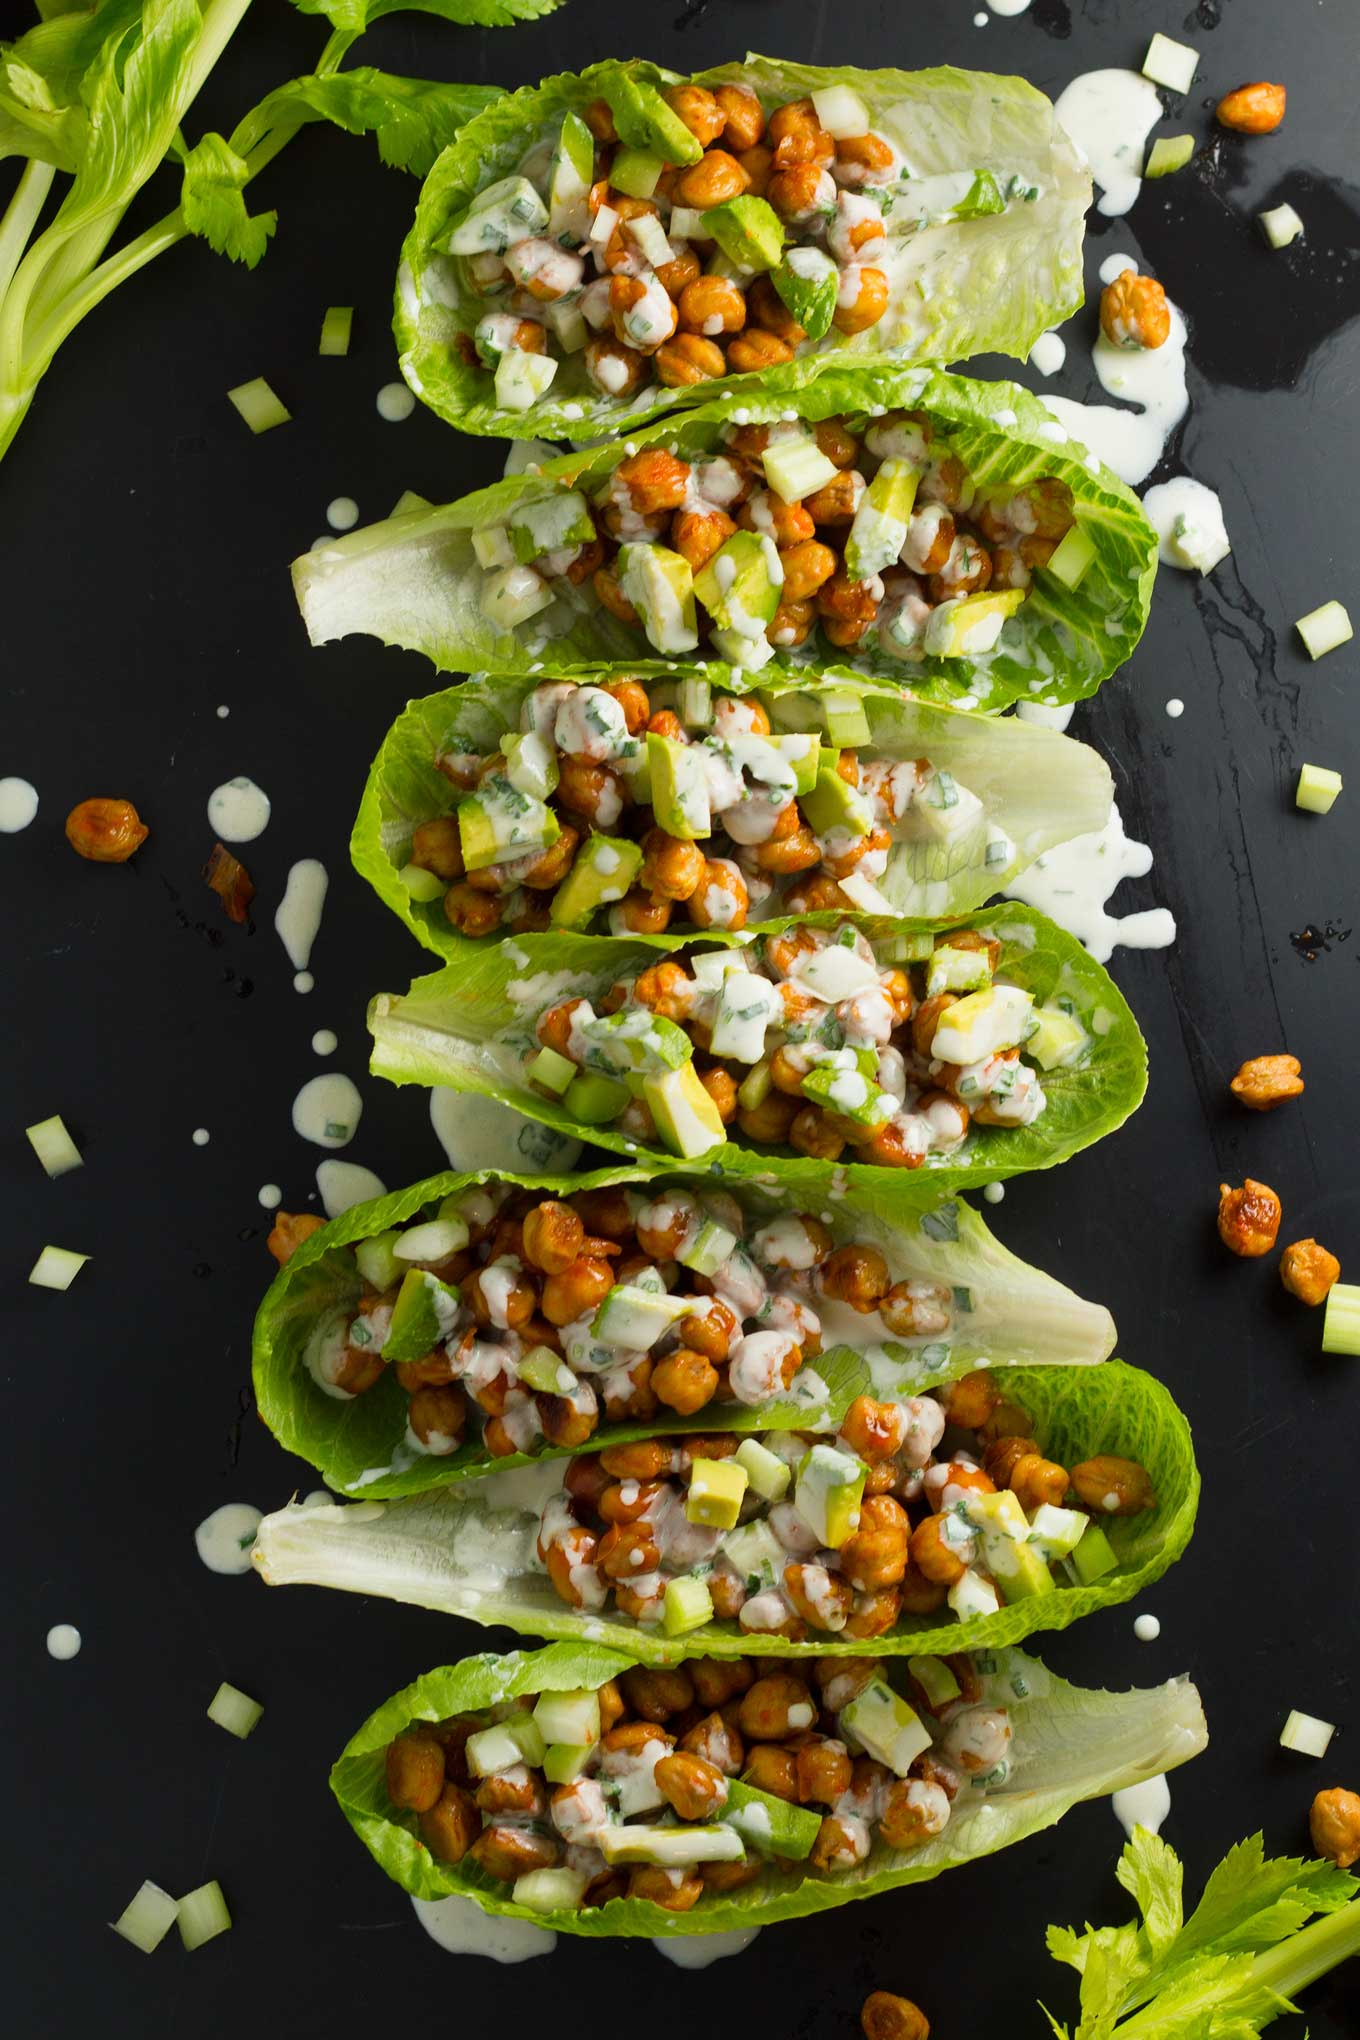 Buffalo Chickpea Lettuce Wraps | Roasted chickpeas are tossed with a spicy buffalo sauce and layered into a lettuce wrap, then topped with crunch celery and creamy avocado! Drizzle with vegan ranch dressing for the perfect lunch or light dinner! | https://eatwithinyourmeans.com